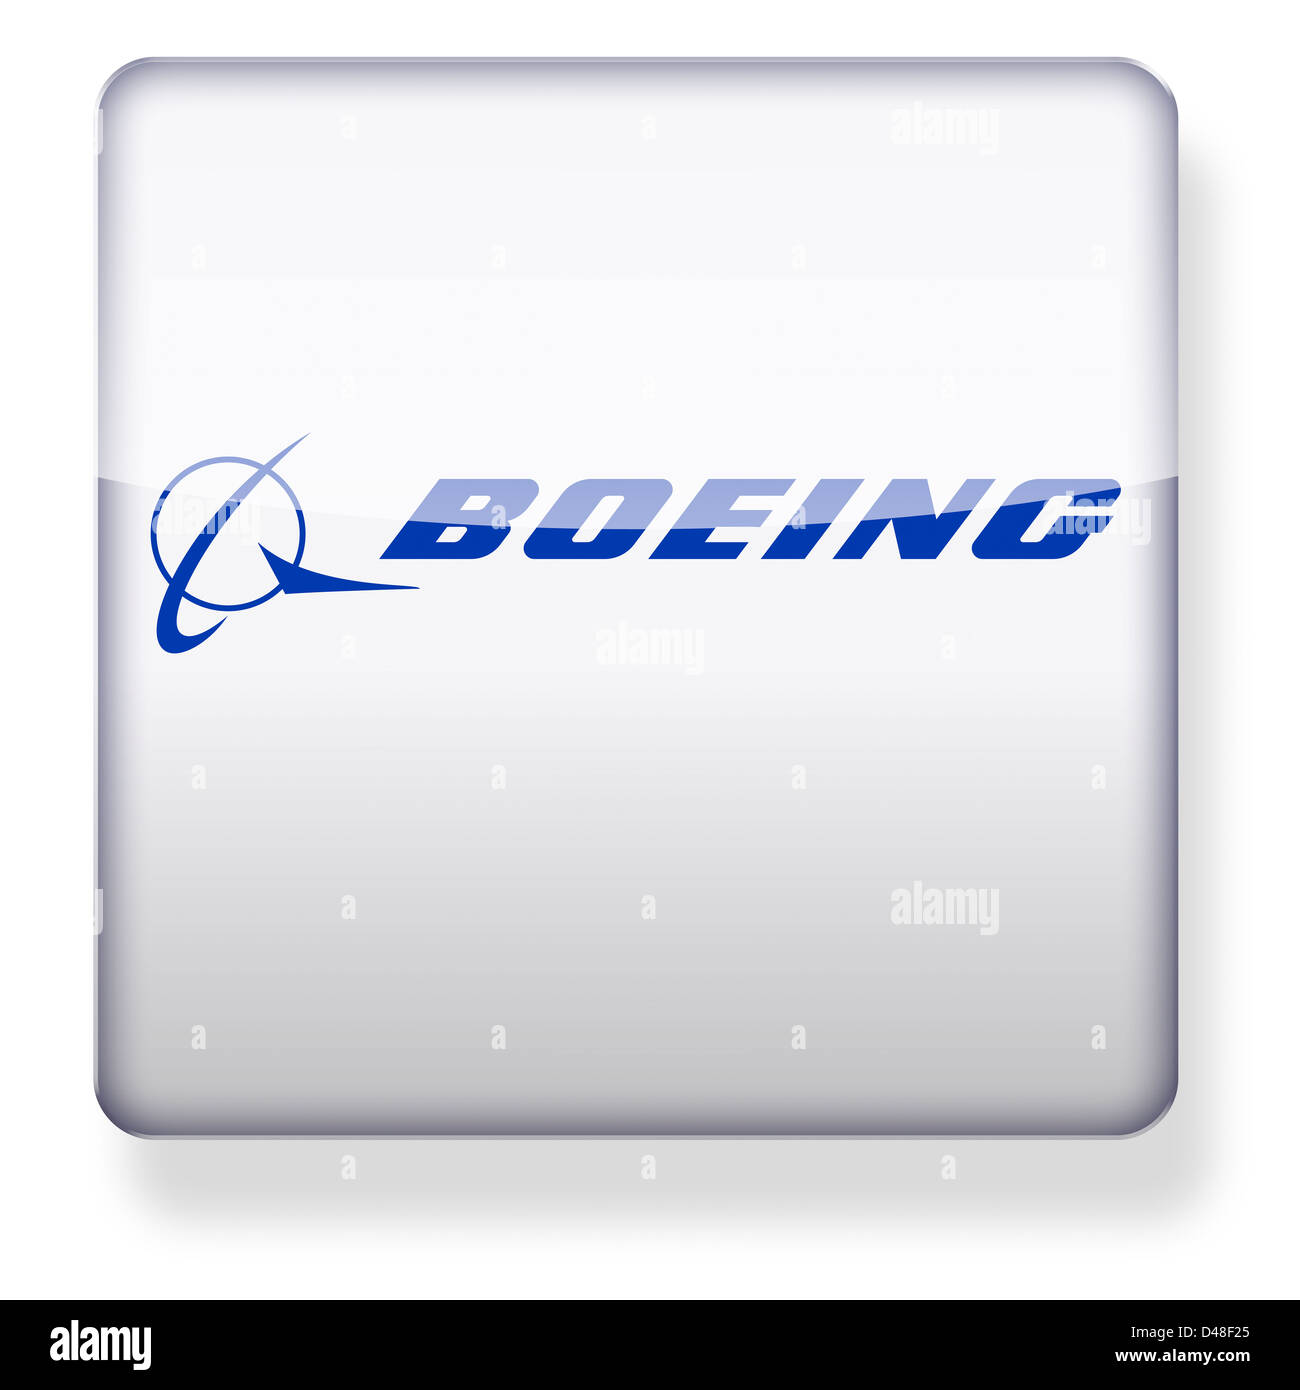 Boeing logo as an app icon. Clipping path included. Stock Photo